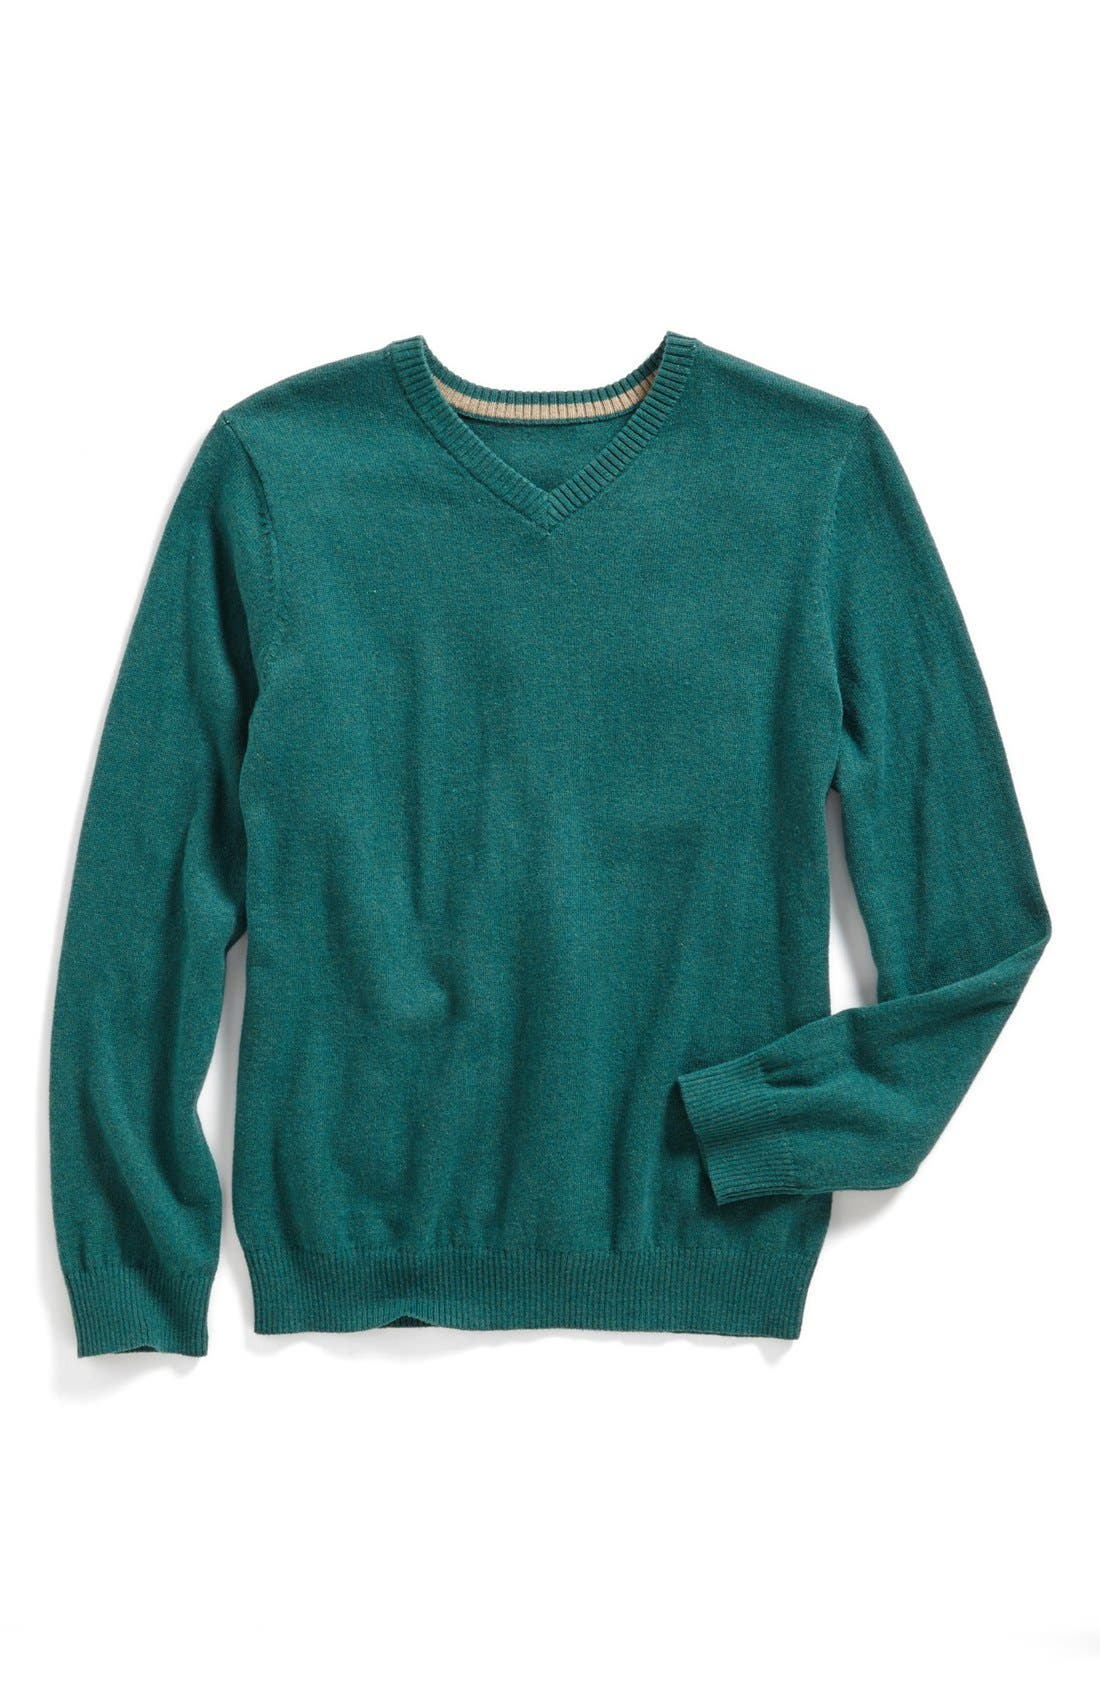 Alternate Image 1 Selected - Tucker + Tate 'Atticus' Cotton & Cashmere Sweater (Little Boys)